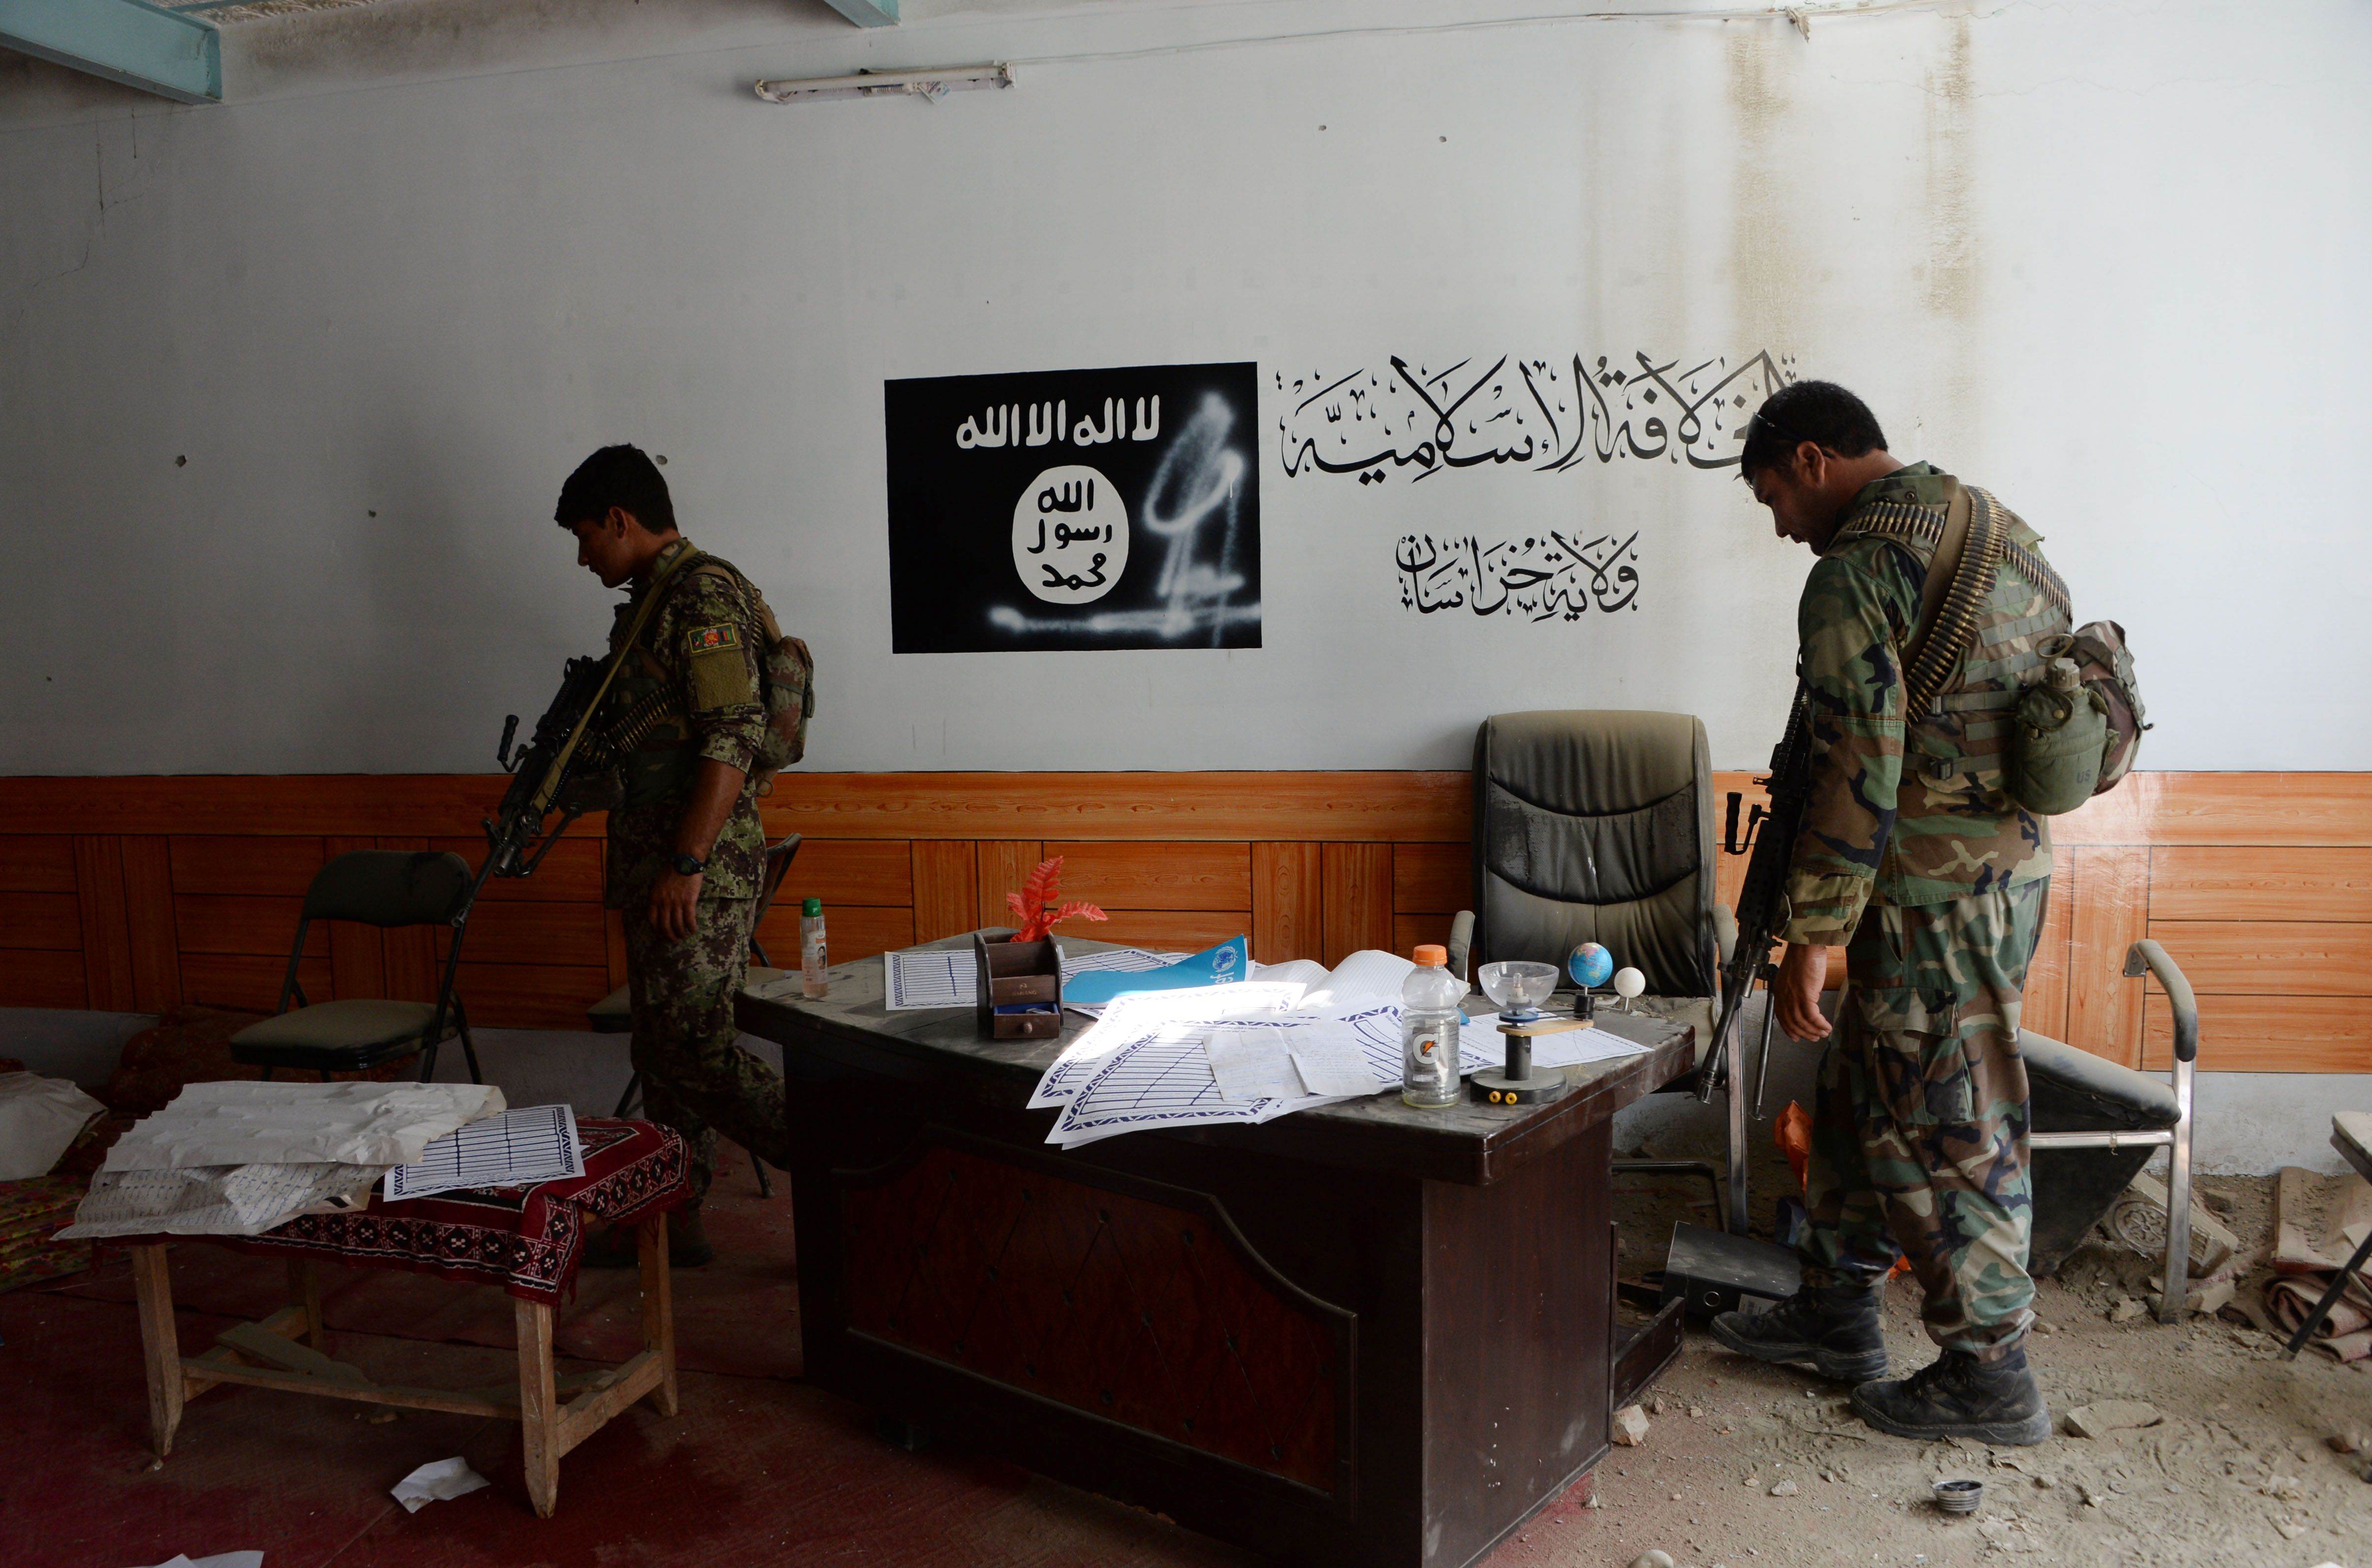 Afghan security forces patrol area controlled by ISIS